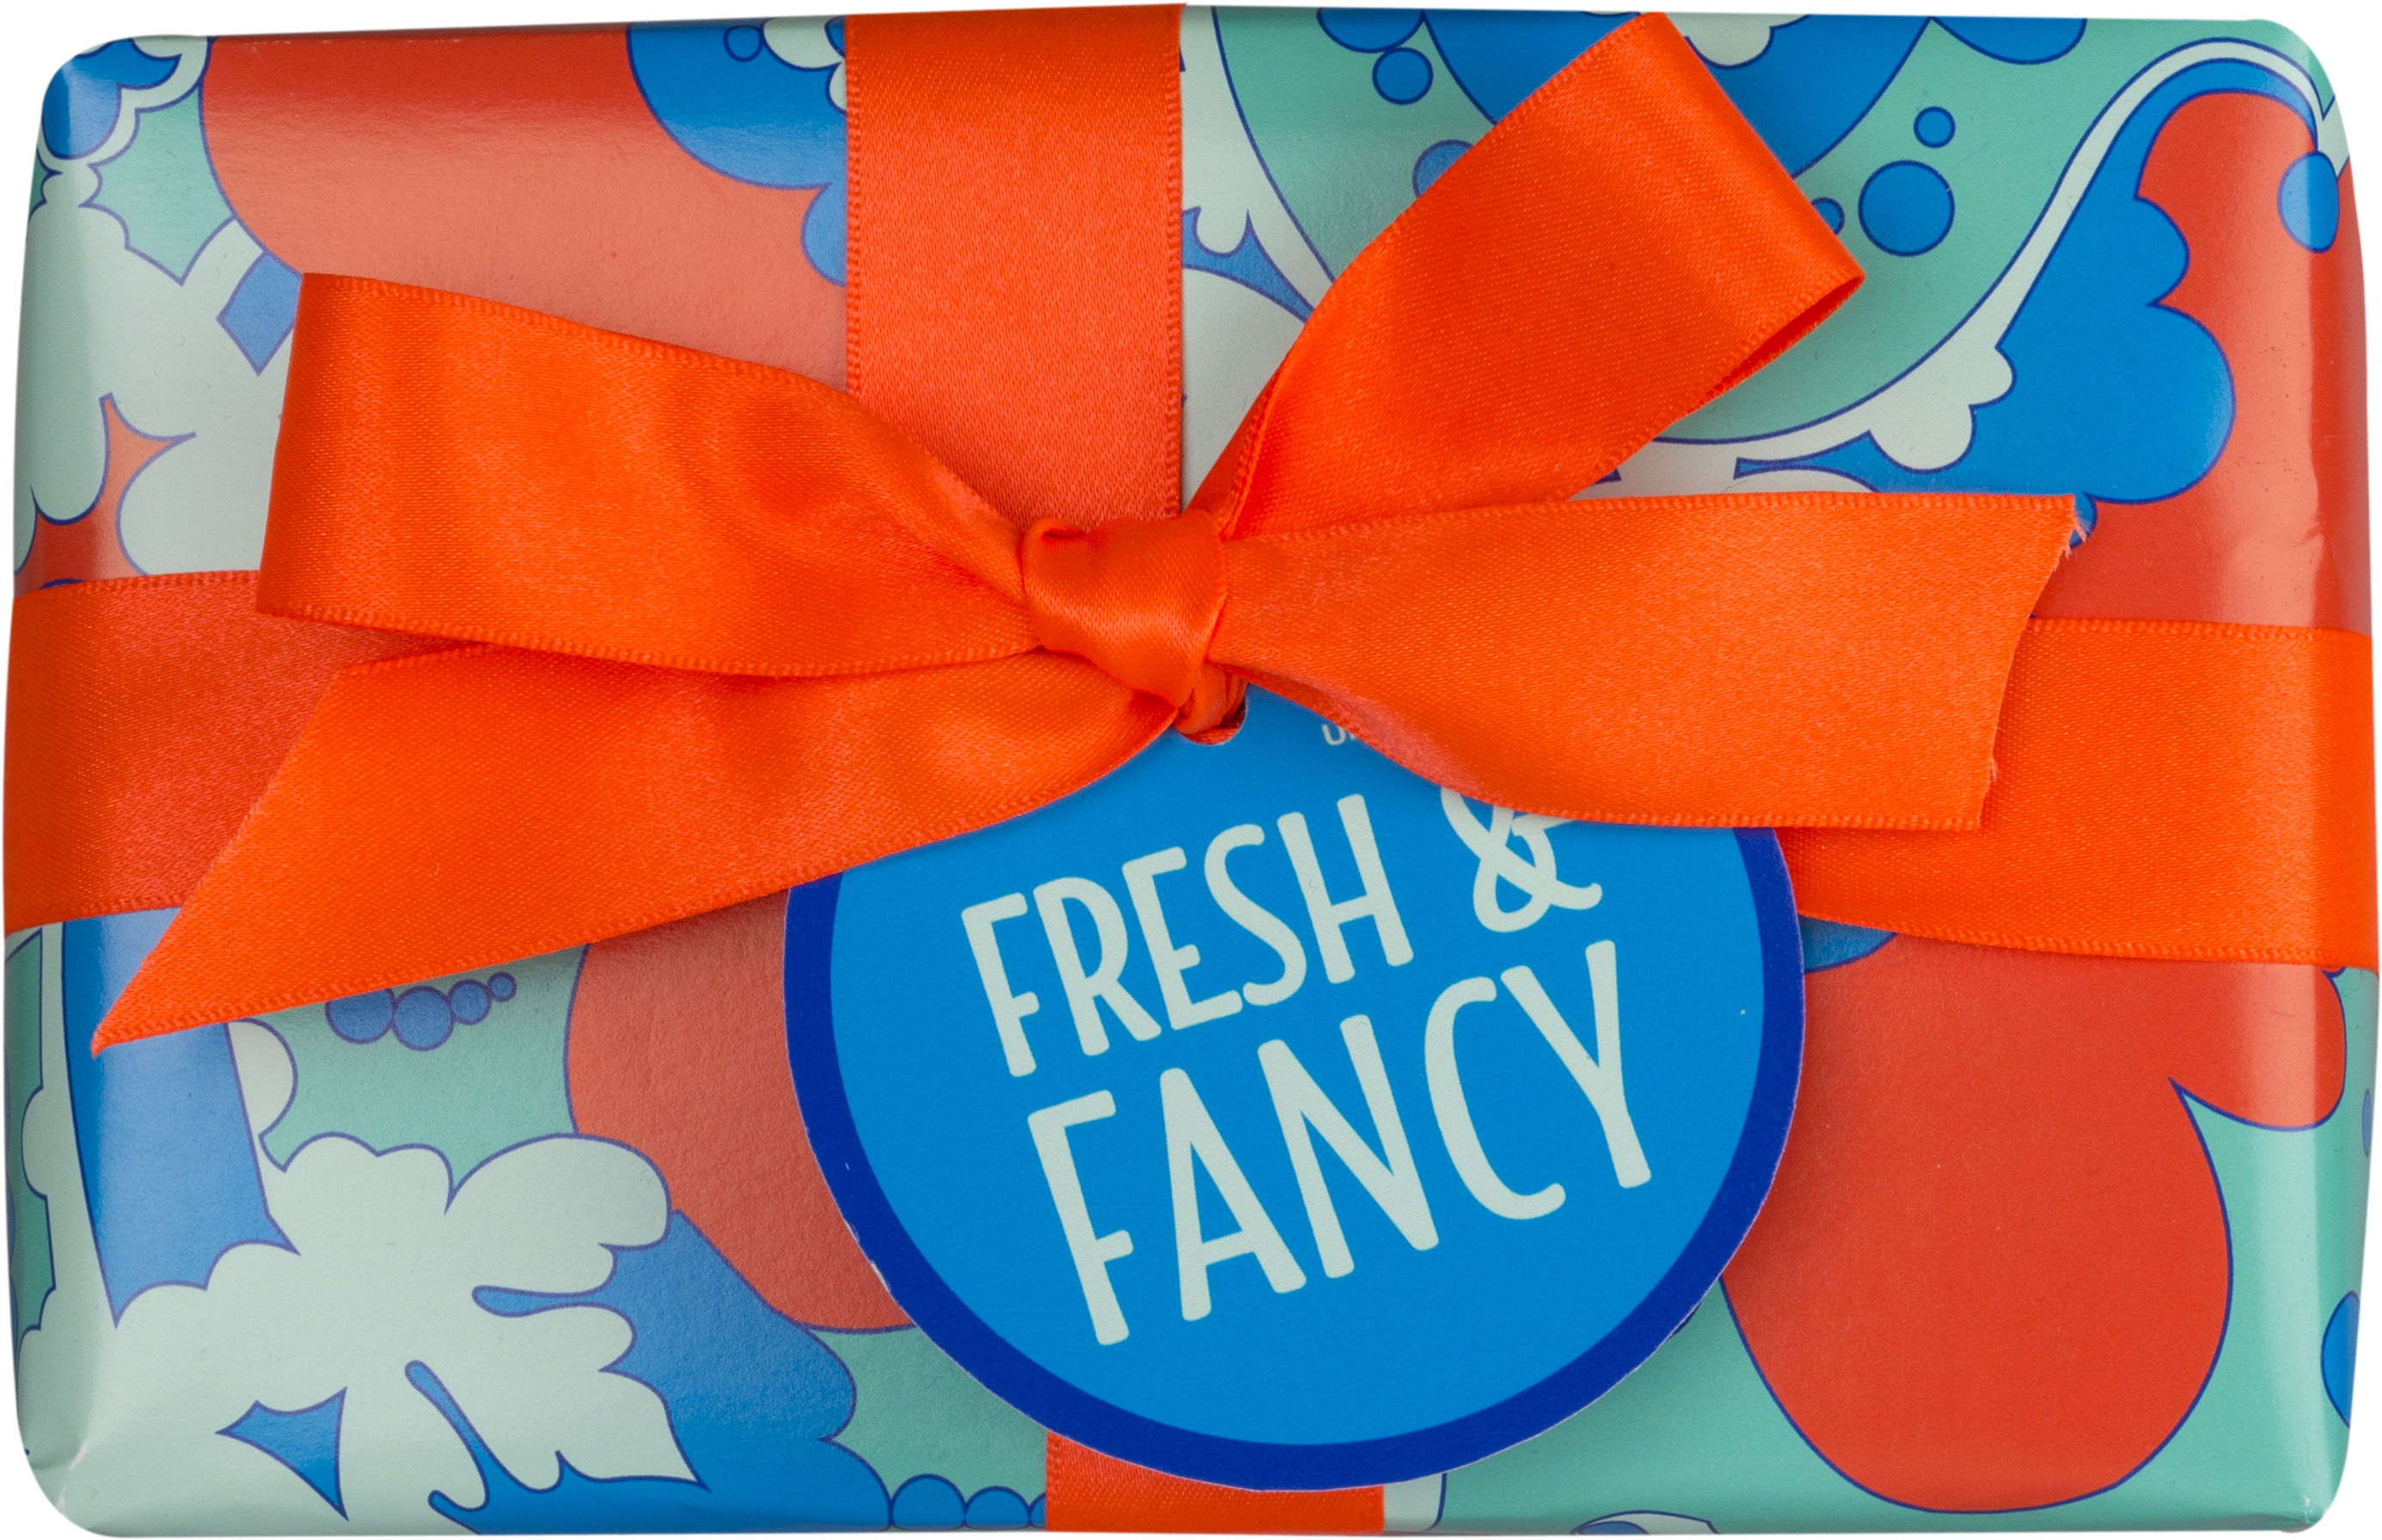 Lush Fresh and Fancy Gift set box